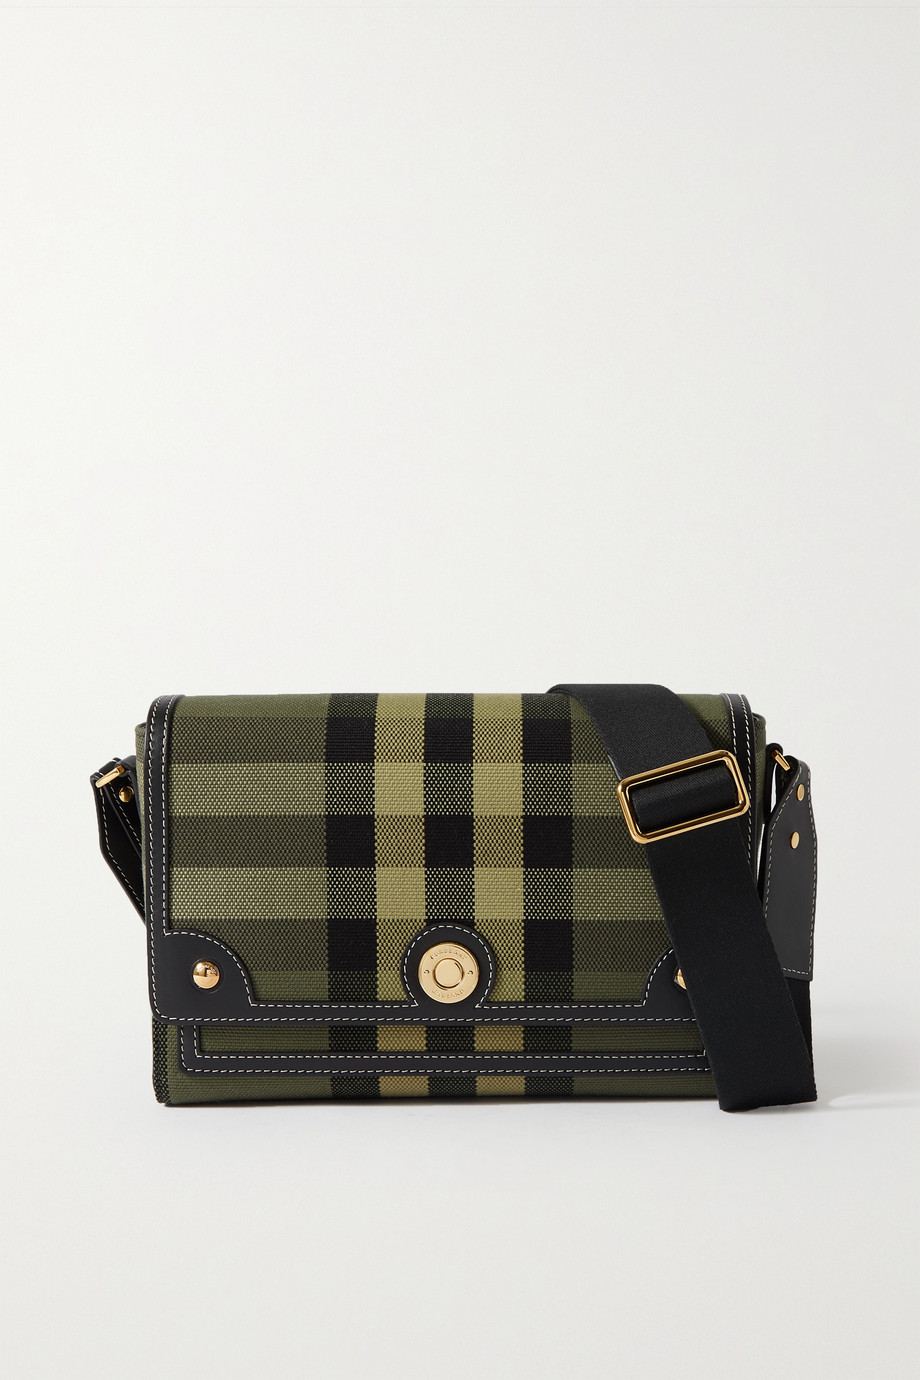 Burberry Leather-trimmed checked canvas shoulder bag